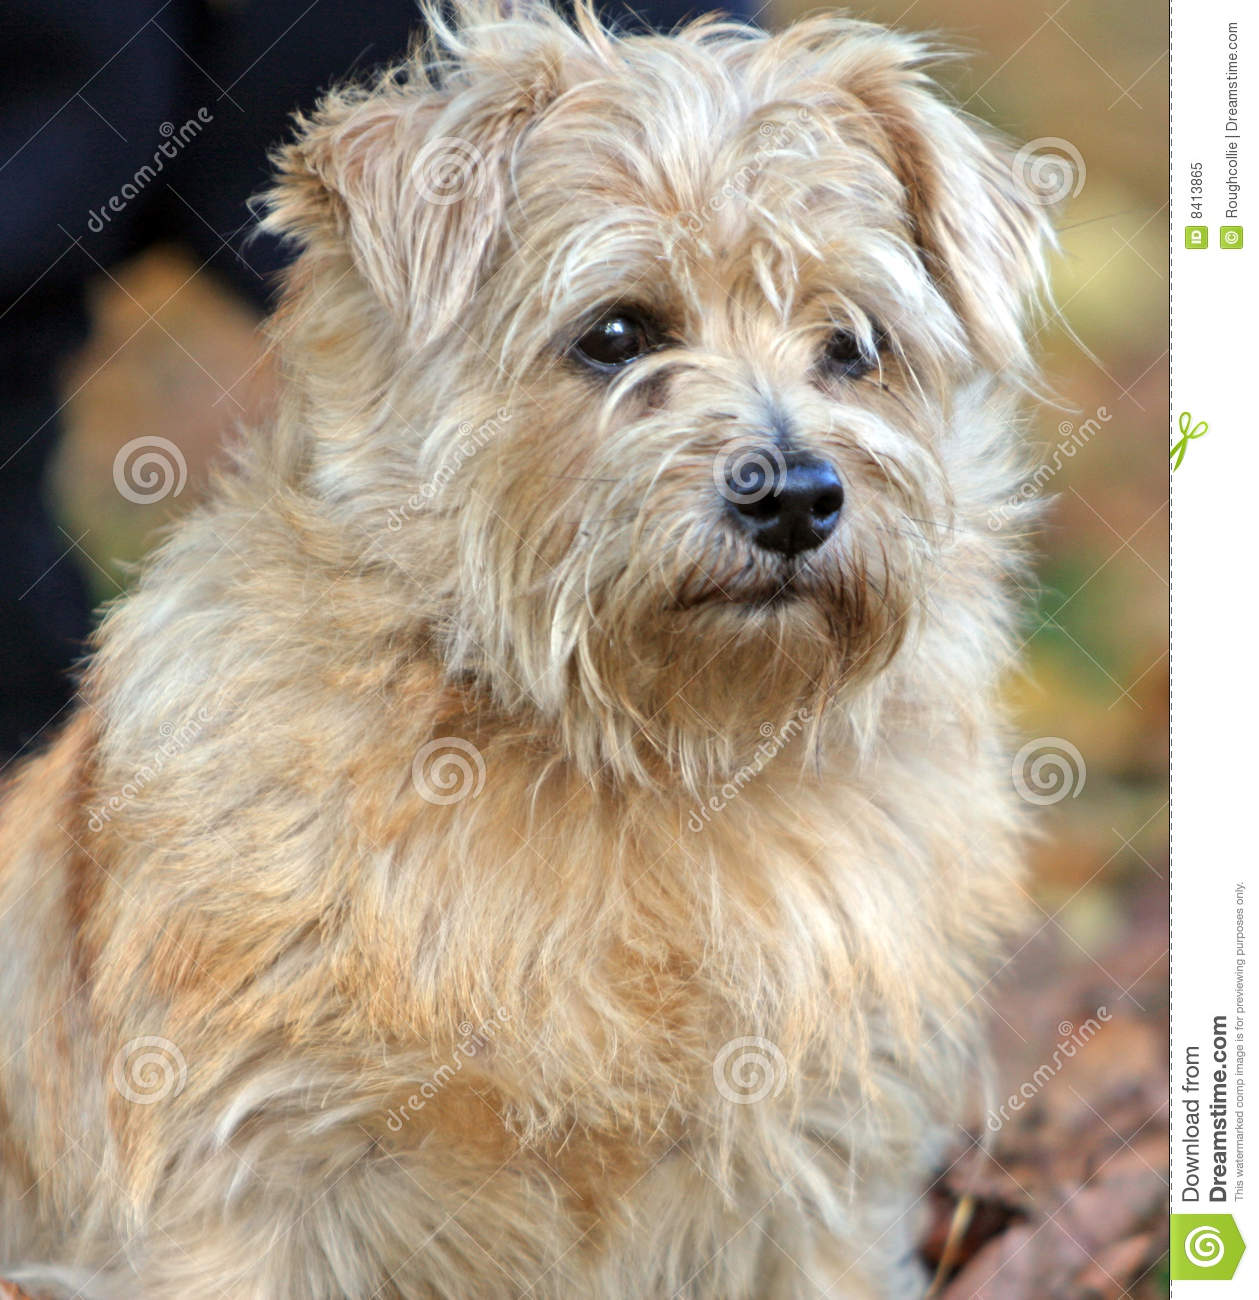 Norfolk Terrier Royalty Free Stock Photo - Image: 8413865